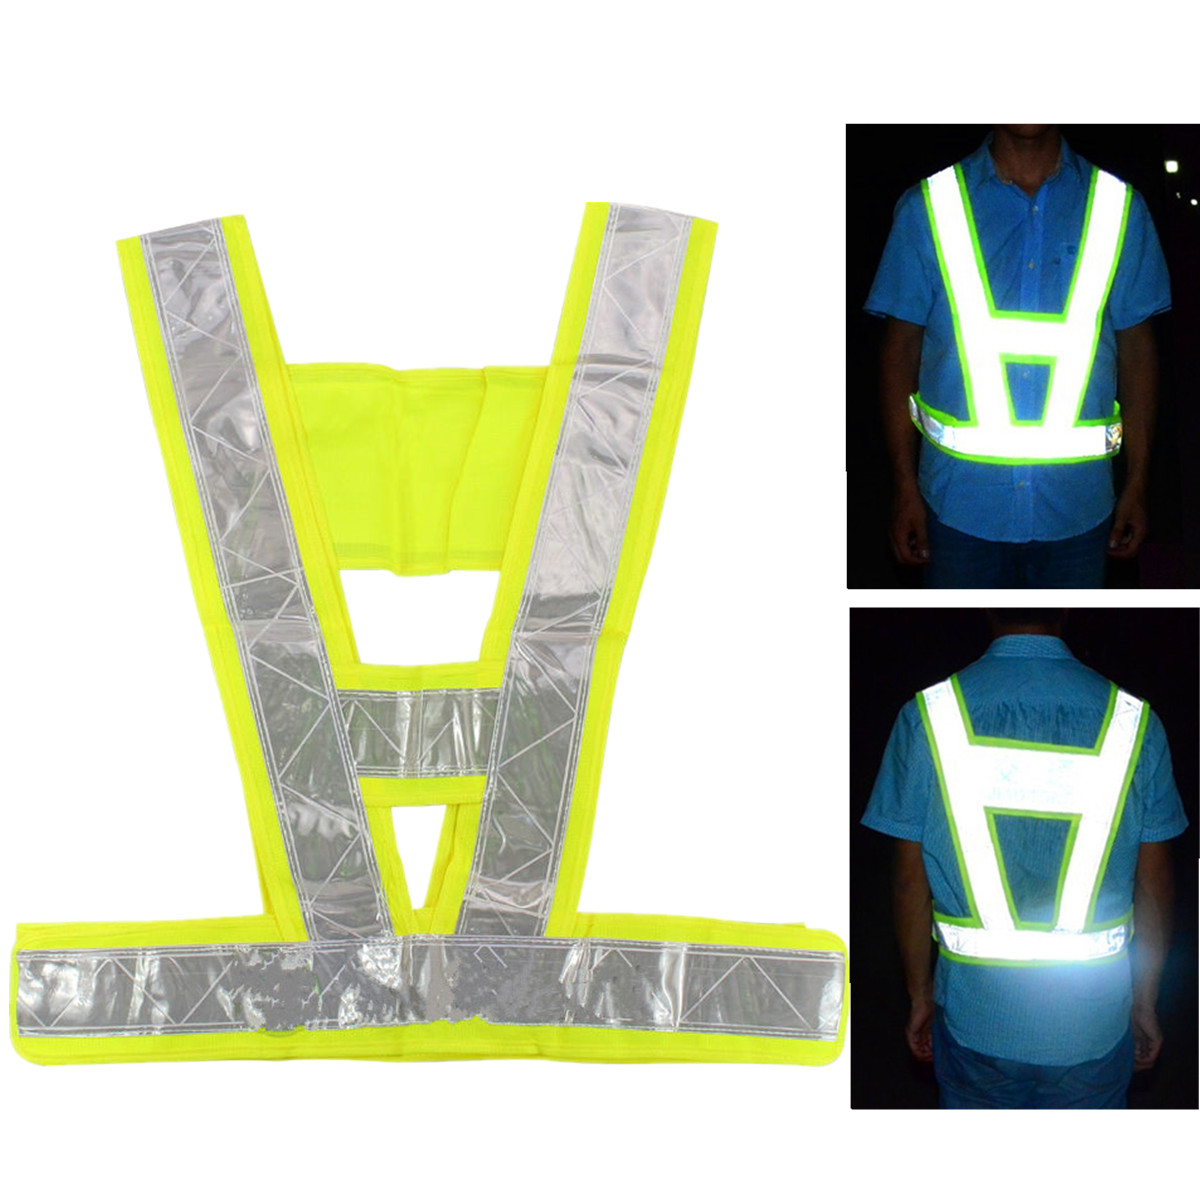 Reflective Safety Vest Jacket Traffic Security Vest High Safety Visibility Reflective Stripe Gear Outdoor Cycling Running Vest new style breathable mesh high visibility reflective traffic safety cycling vest printable words logo